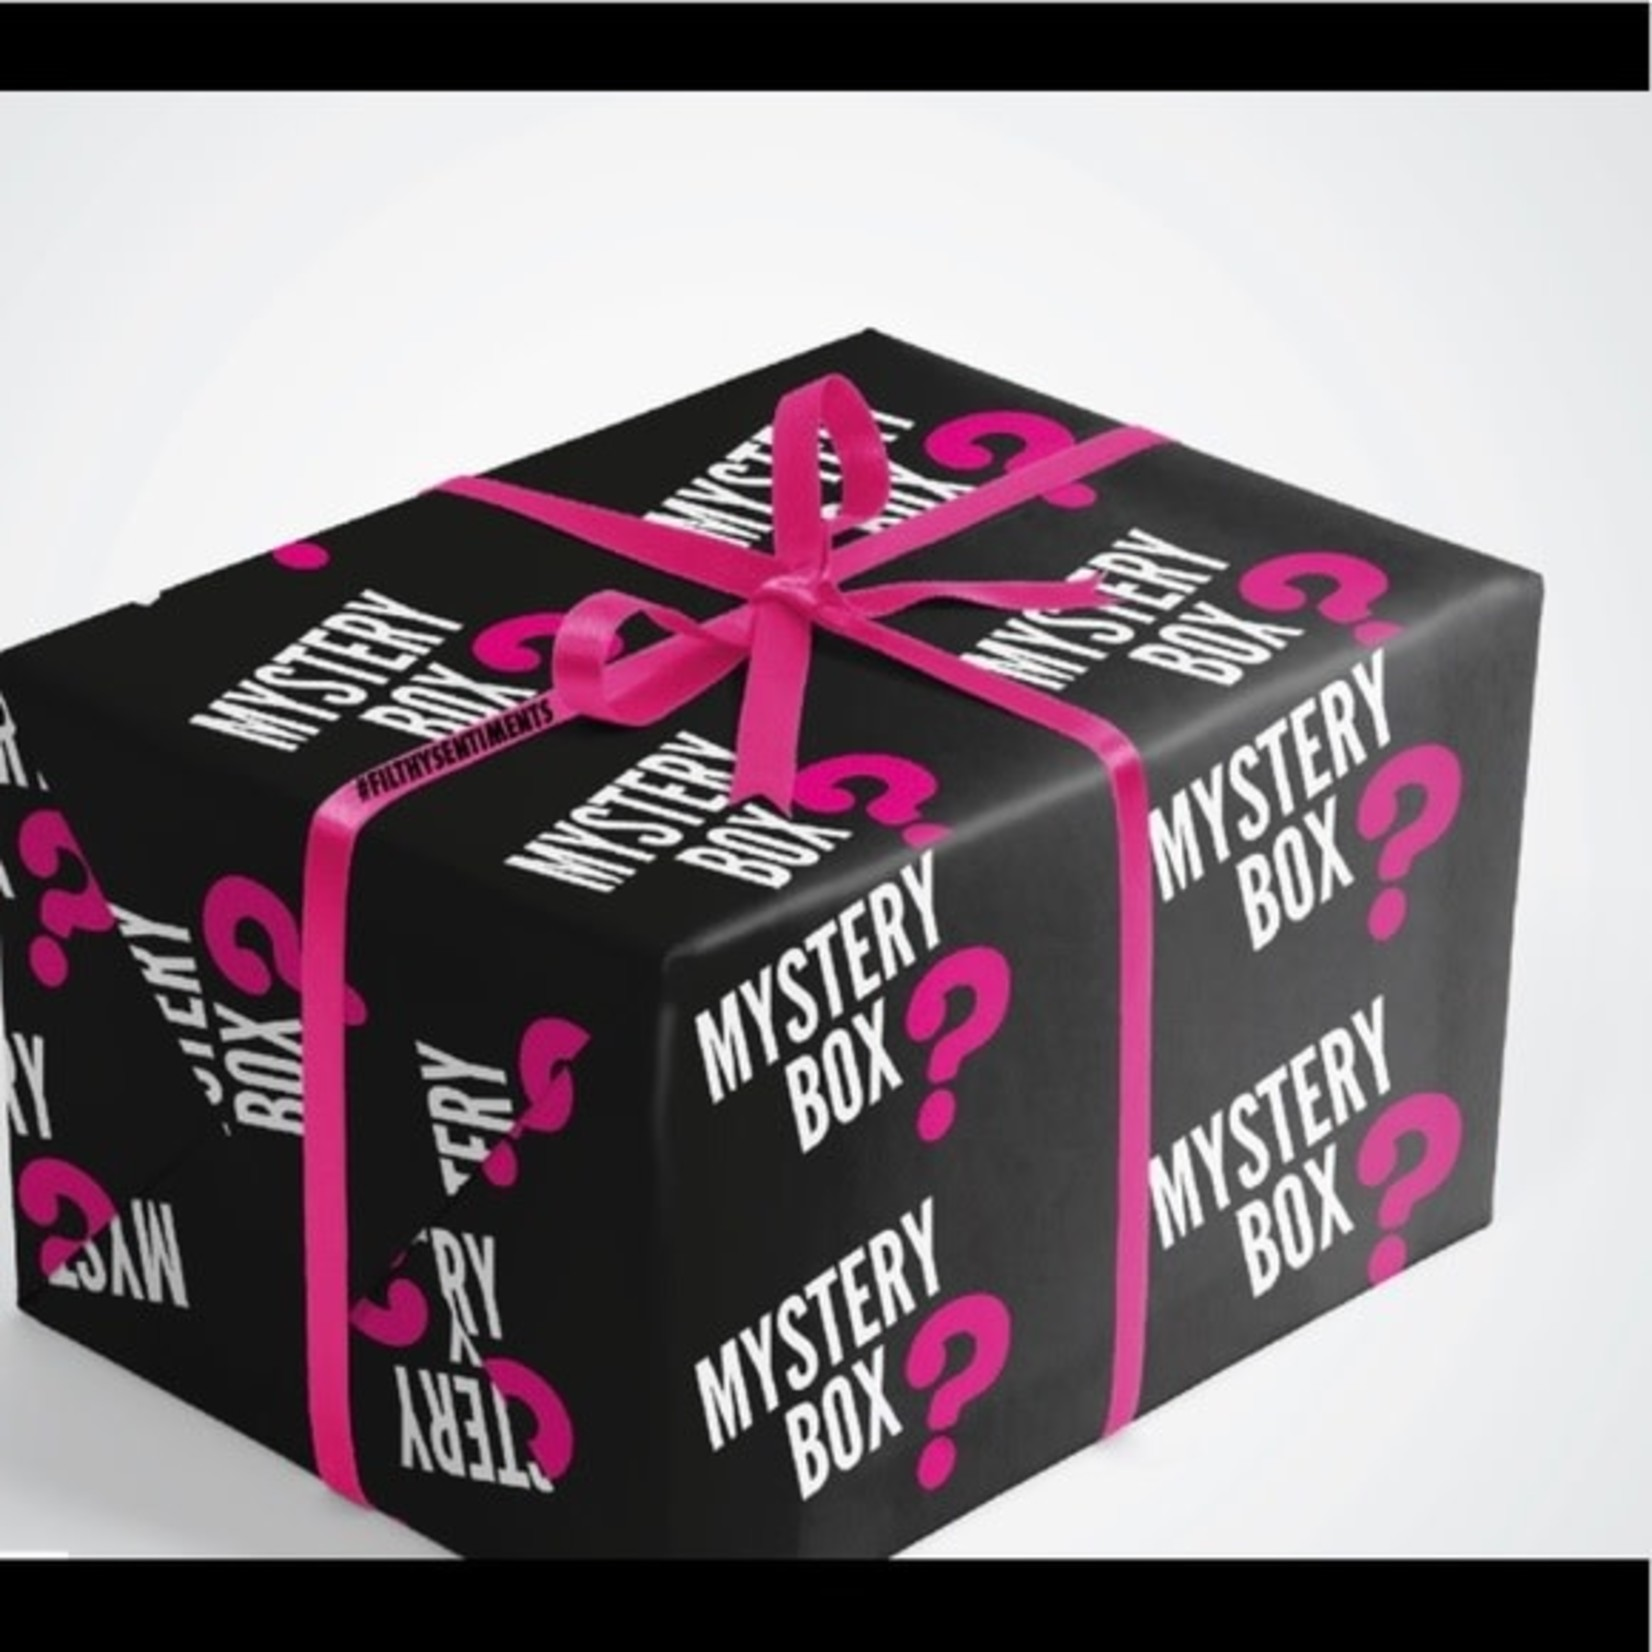 For Her Mystery Box